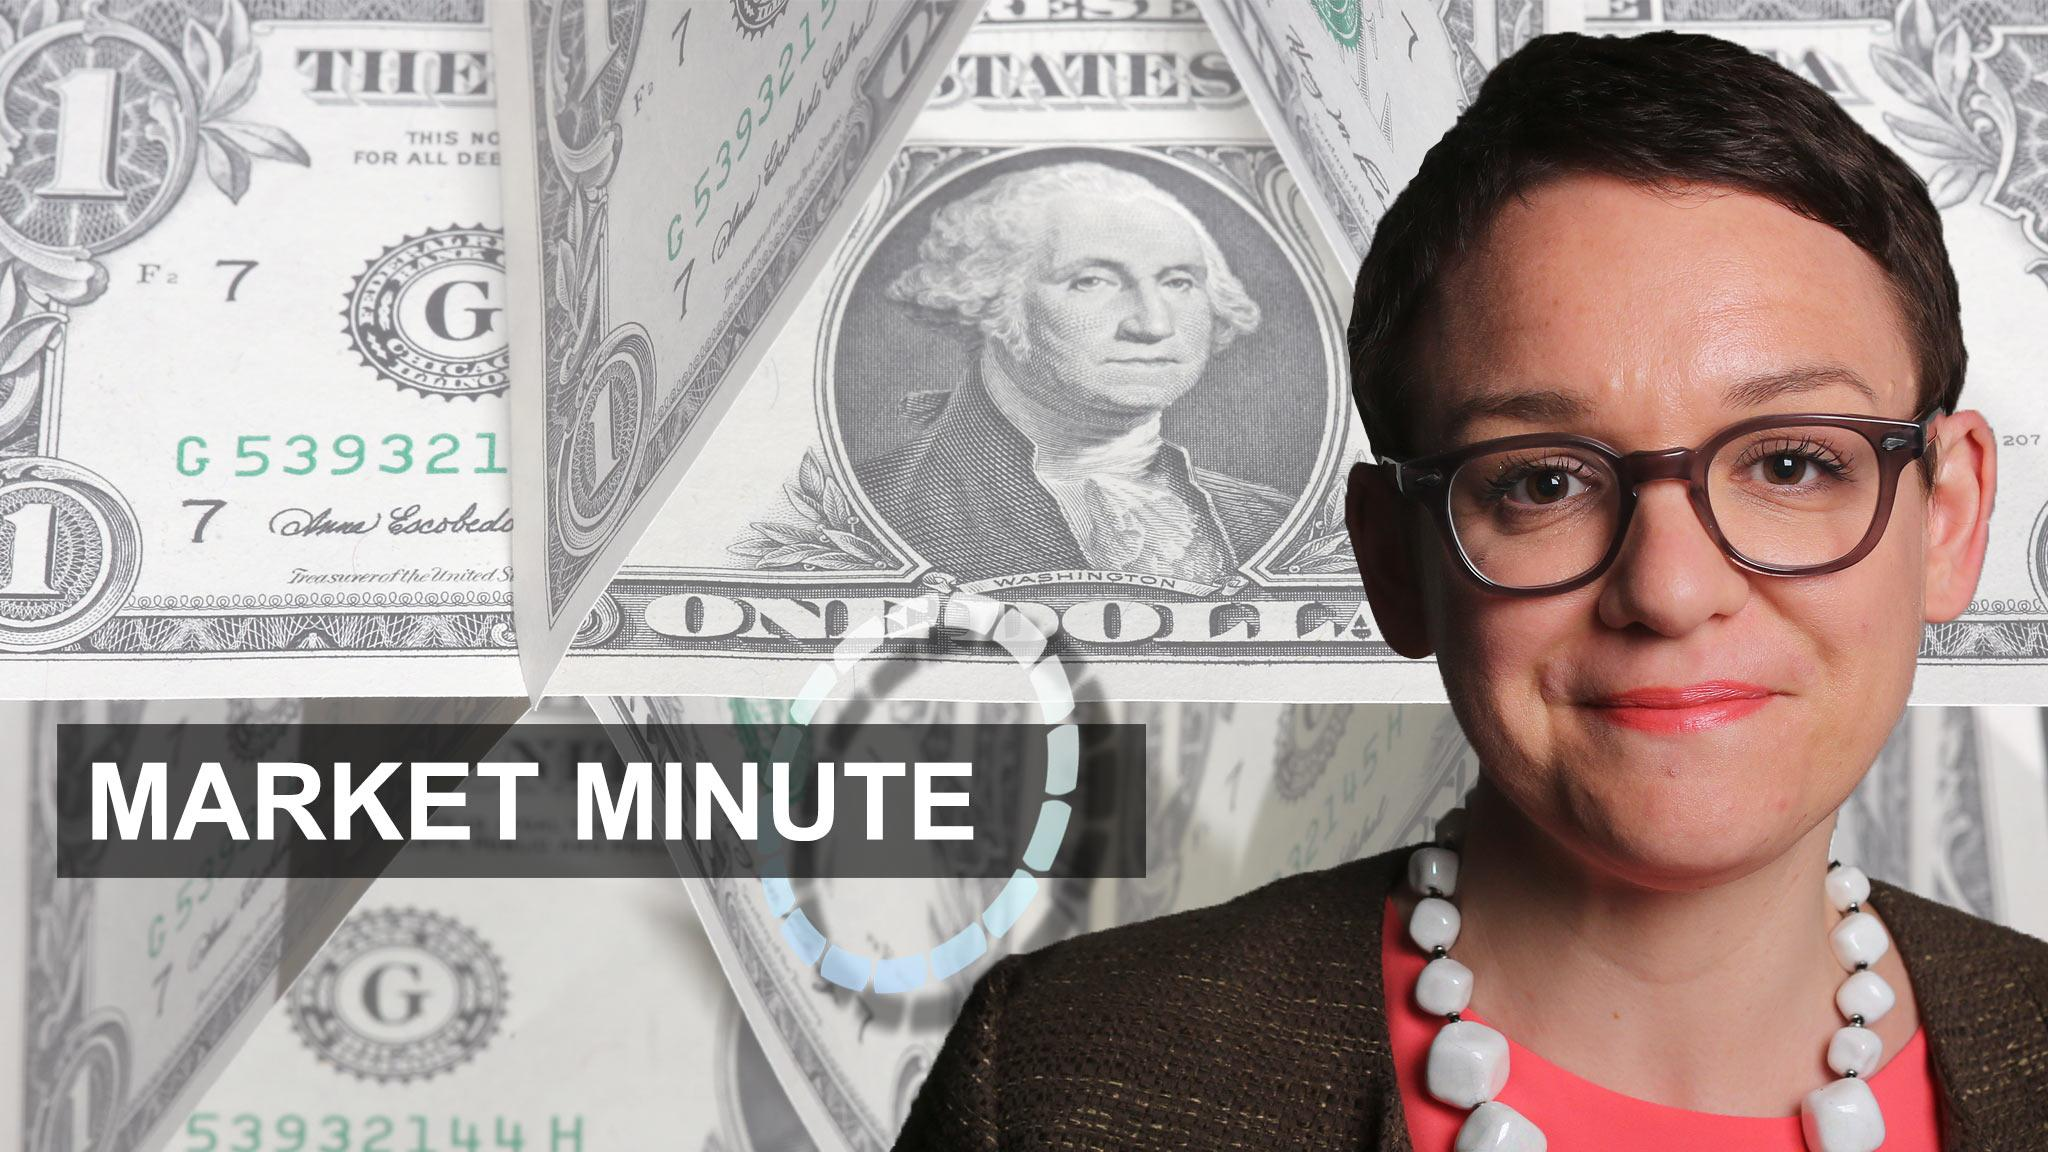 Market Minute - gains for dollar, relief for Europe